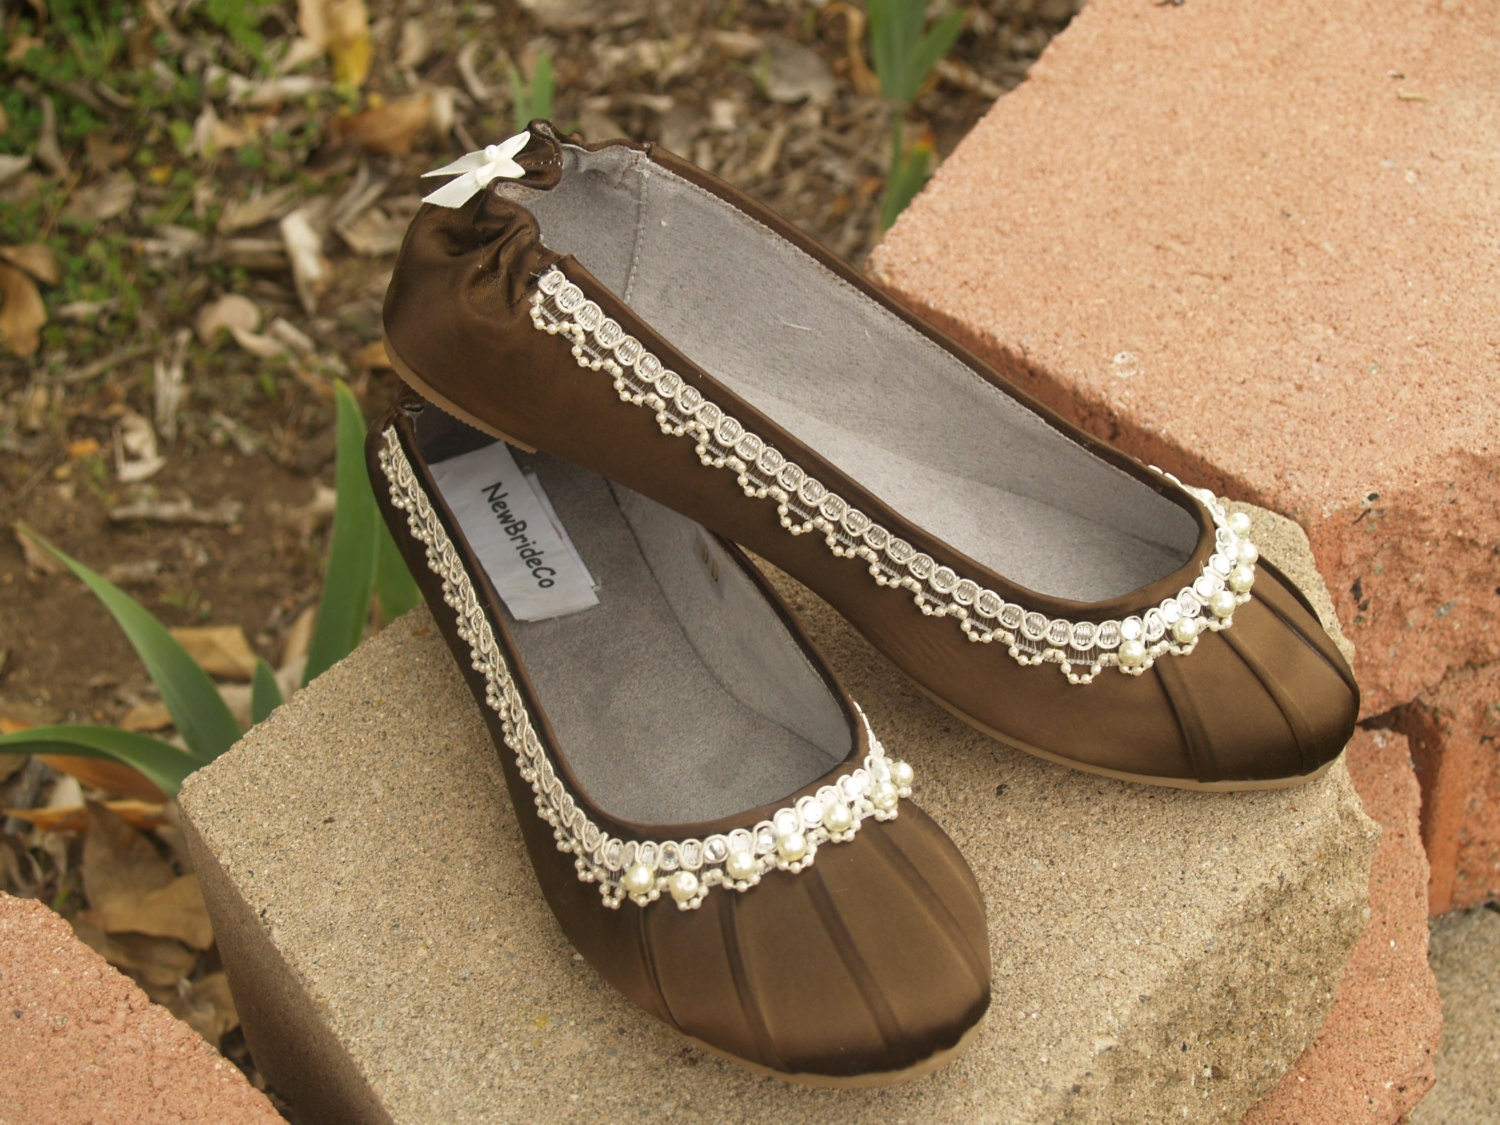 Brown Flats Or Sage Flat Shoes Fancy Shoes For Wedding Or Prom Bridesmaids Chocolate Pearls Embellished Perfectly Dainty